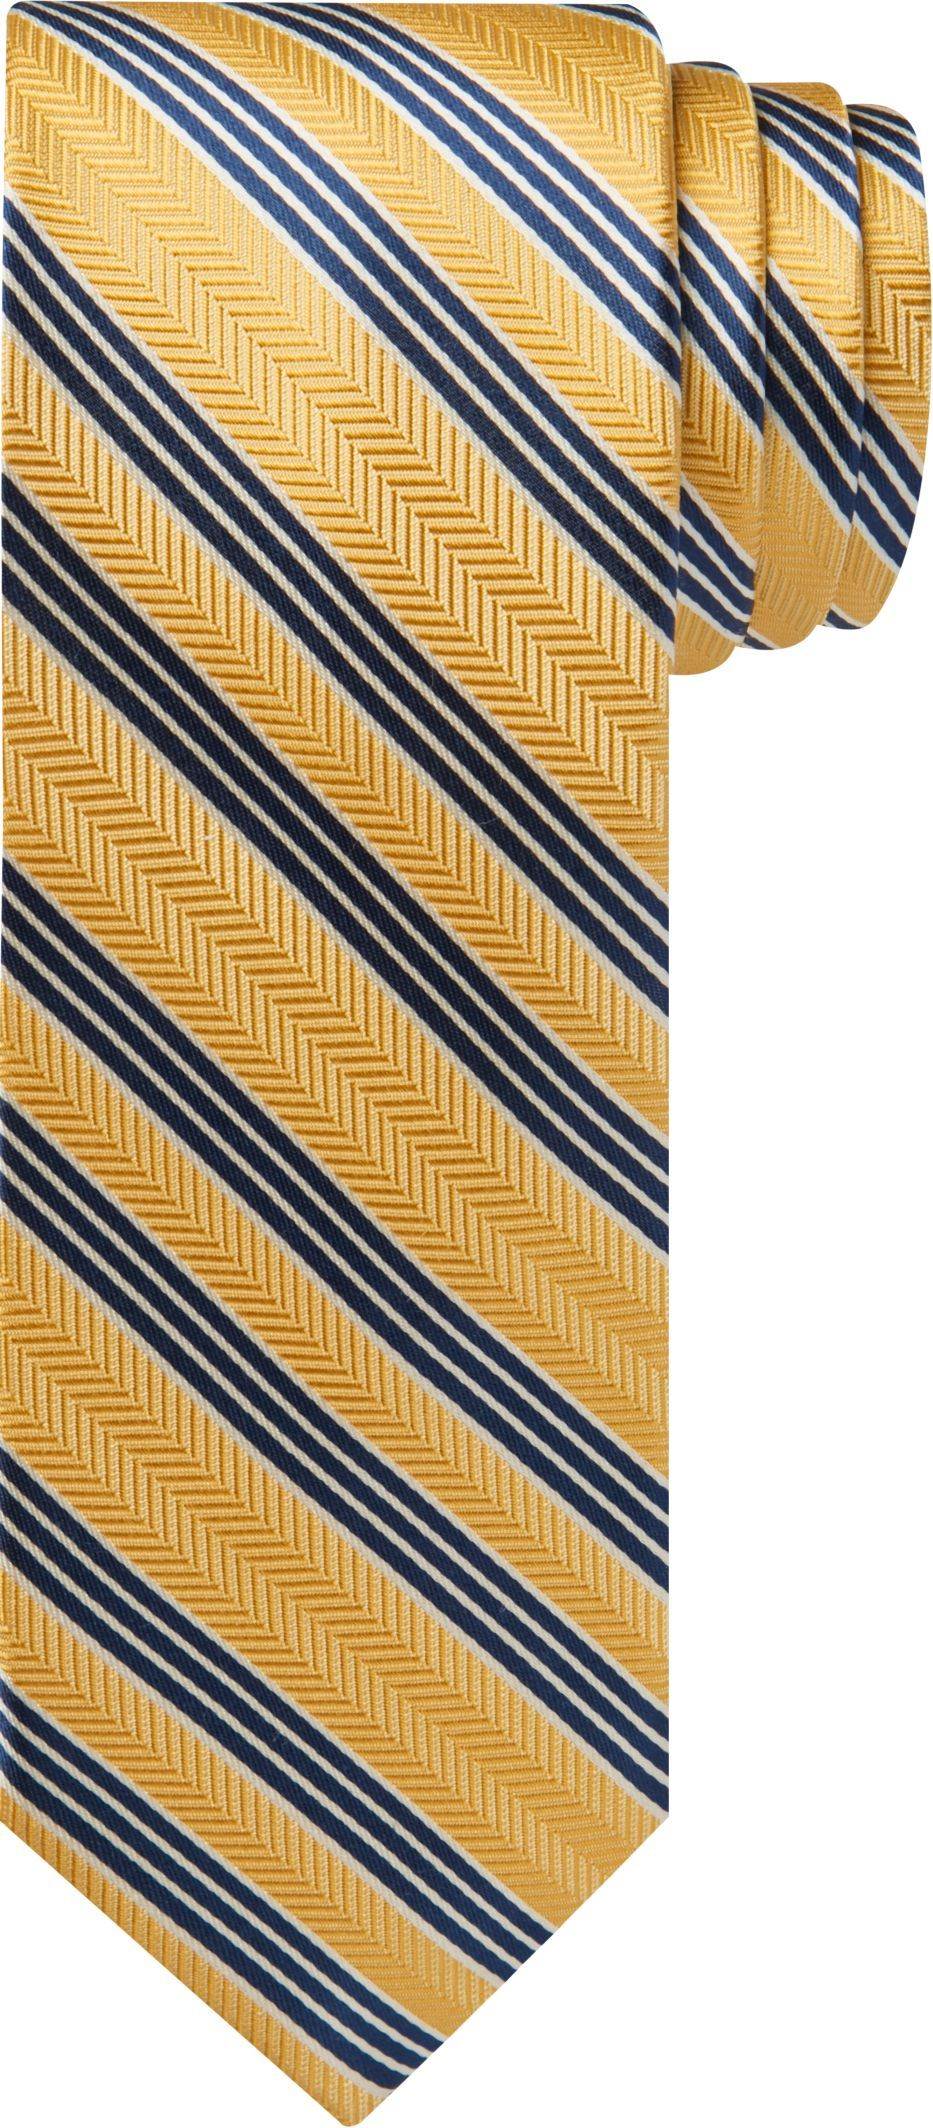 bbe05ac55 1905 Collection Stripe Tie | Products | Tie, Collection